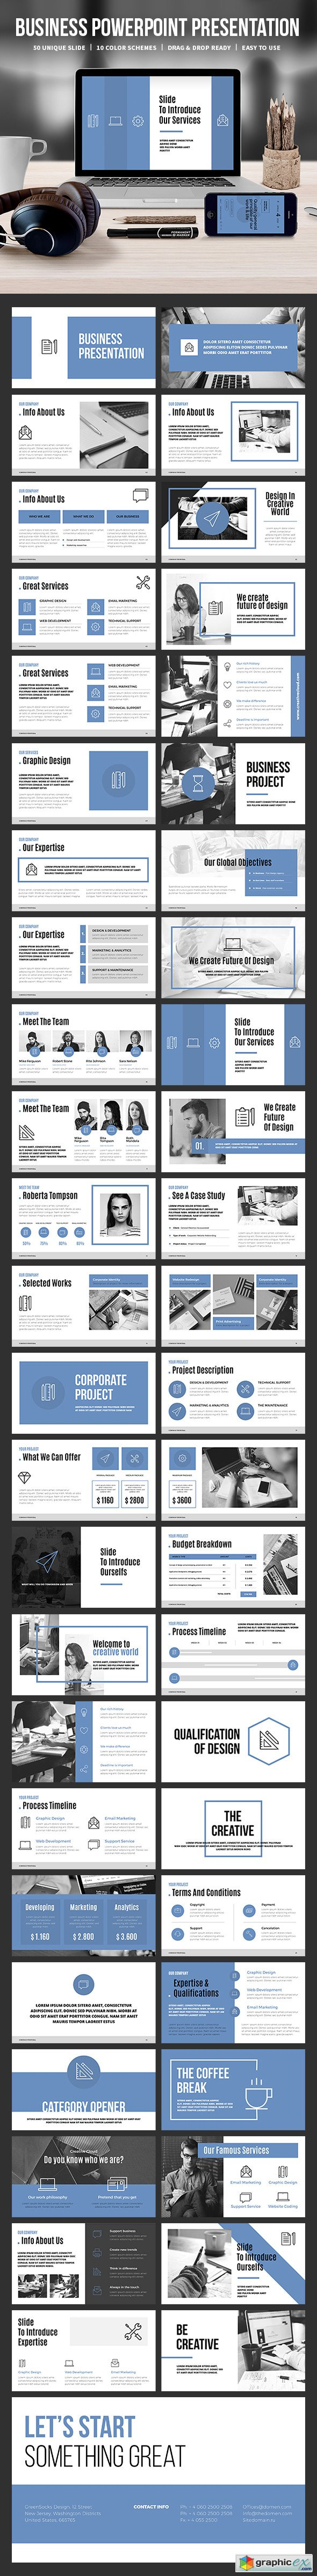 Business Powerpoint Template 19440627